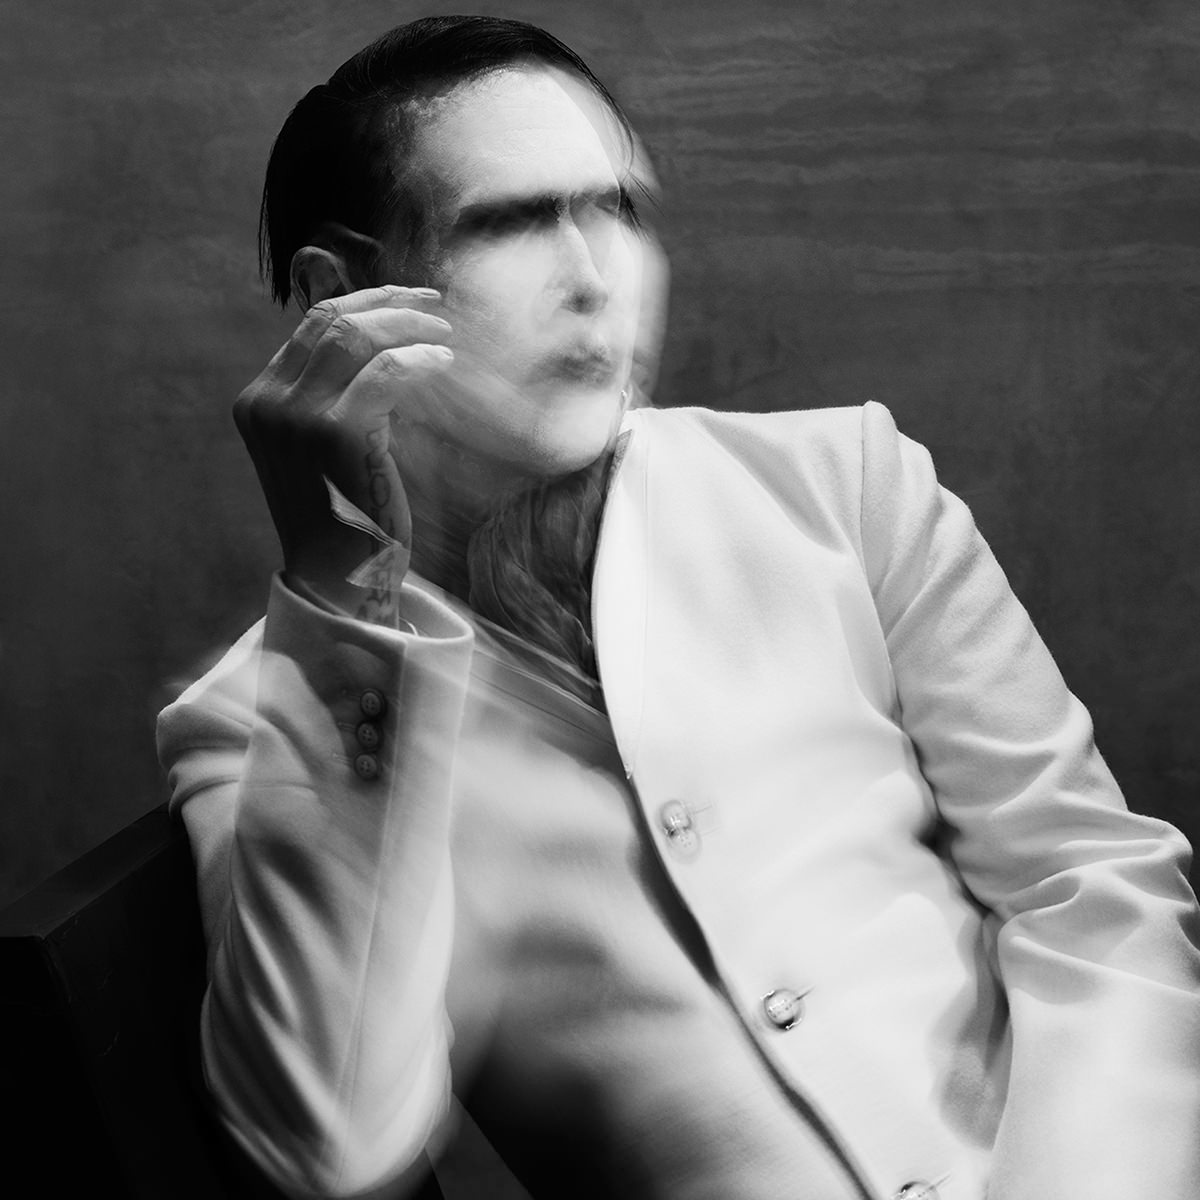 Marilyn Manson Backgrounds, Compatible - PC, Mobile, Gadgets  1200x1200 px